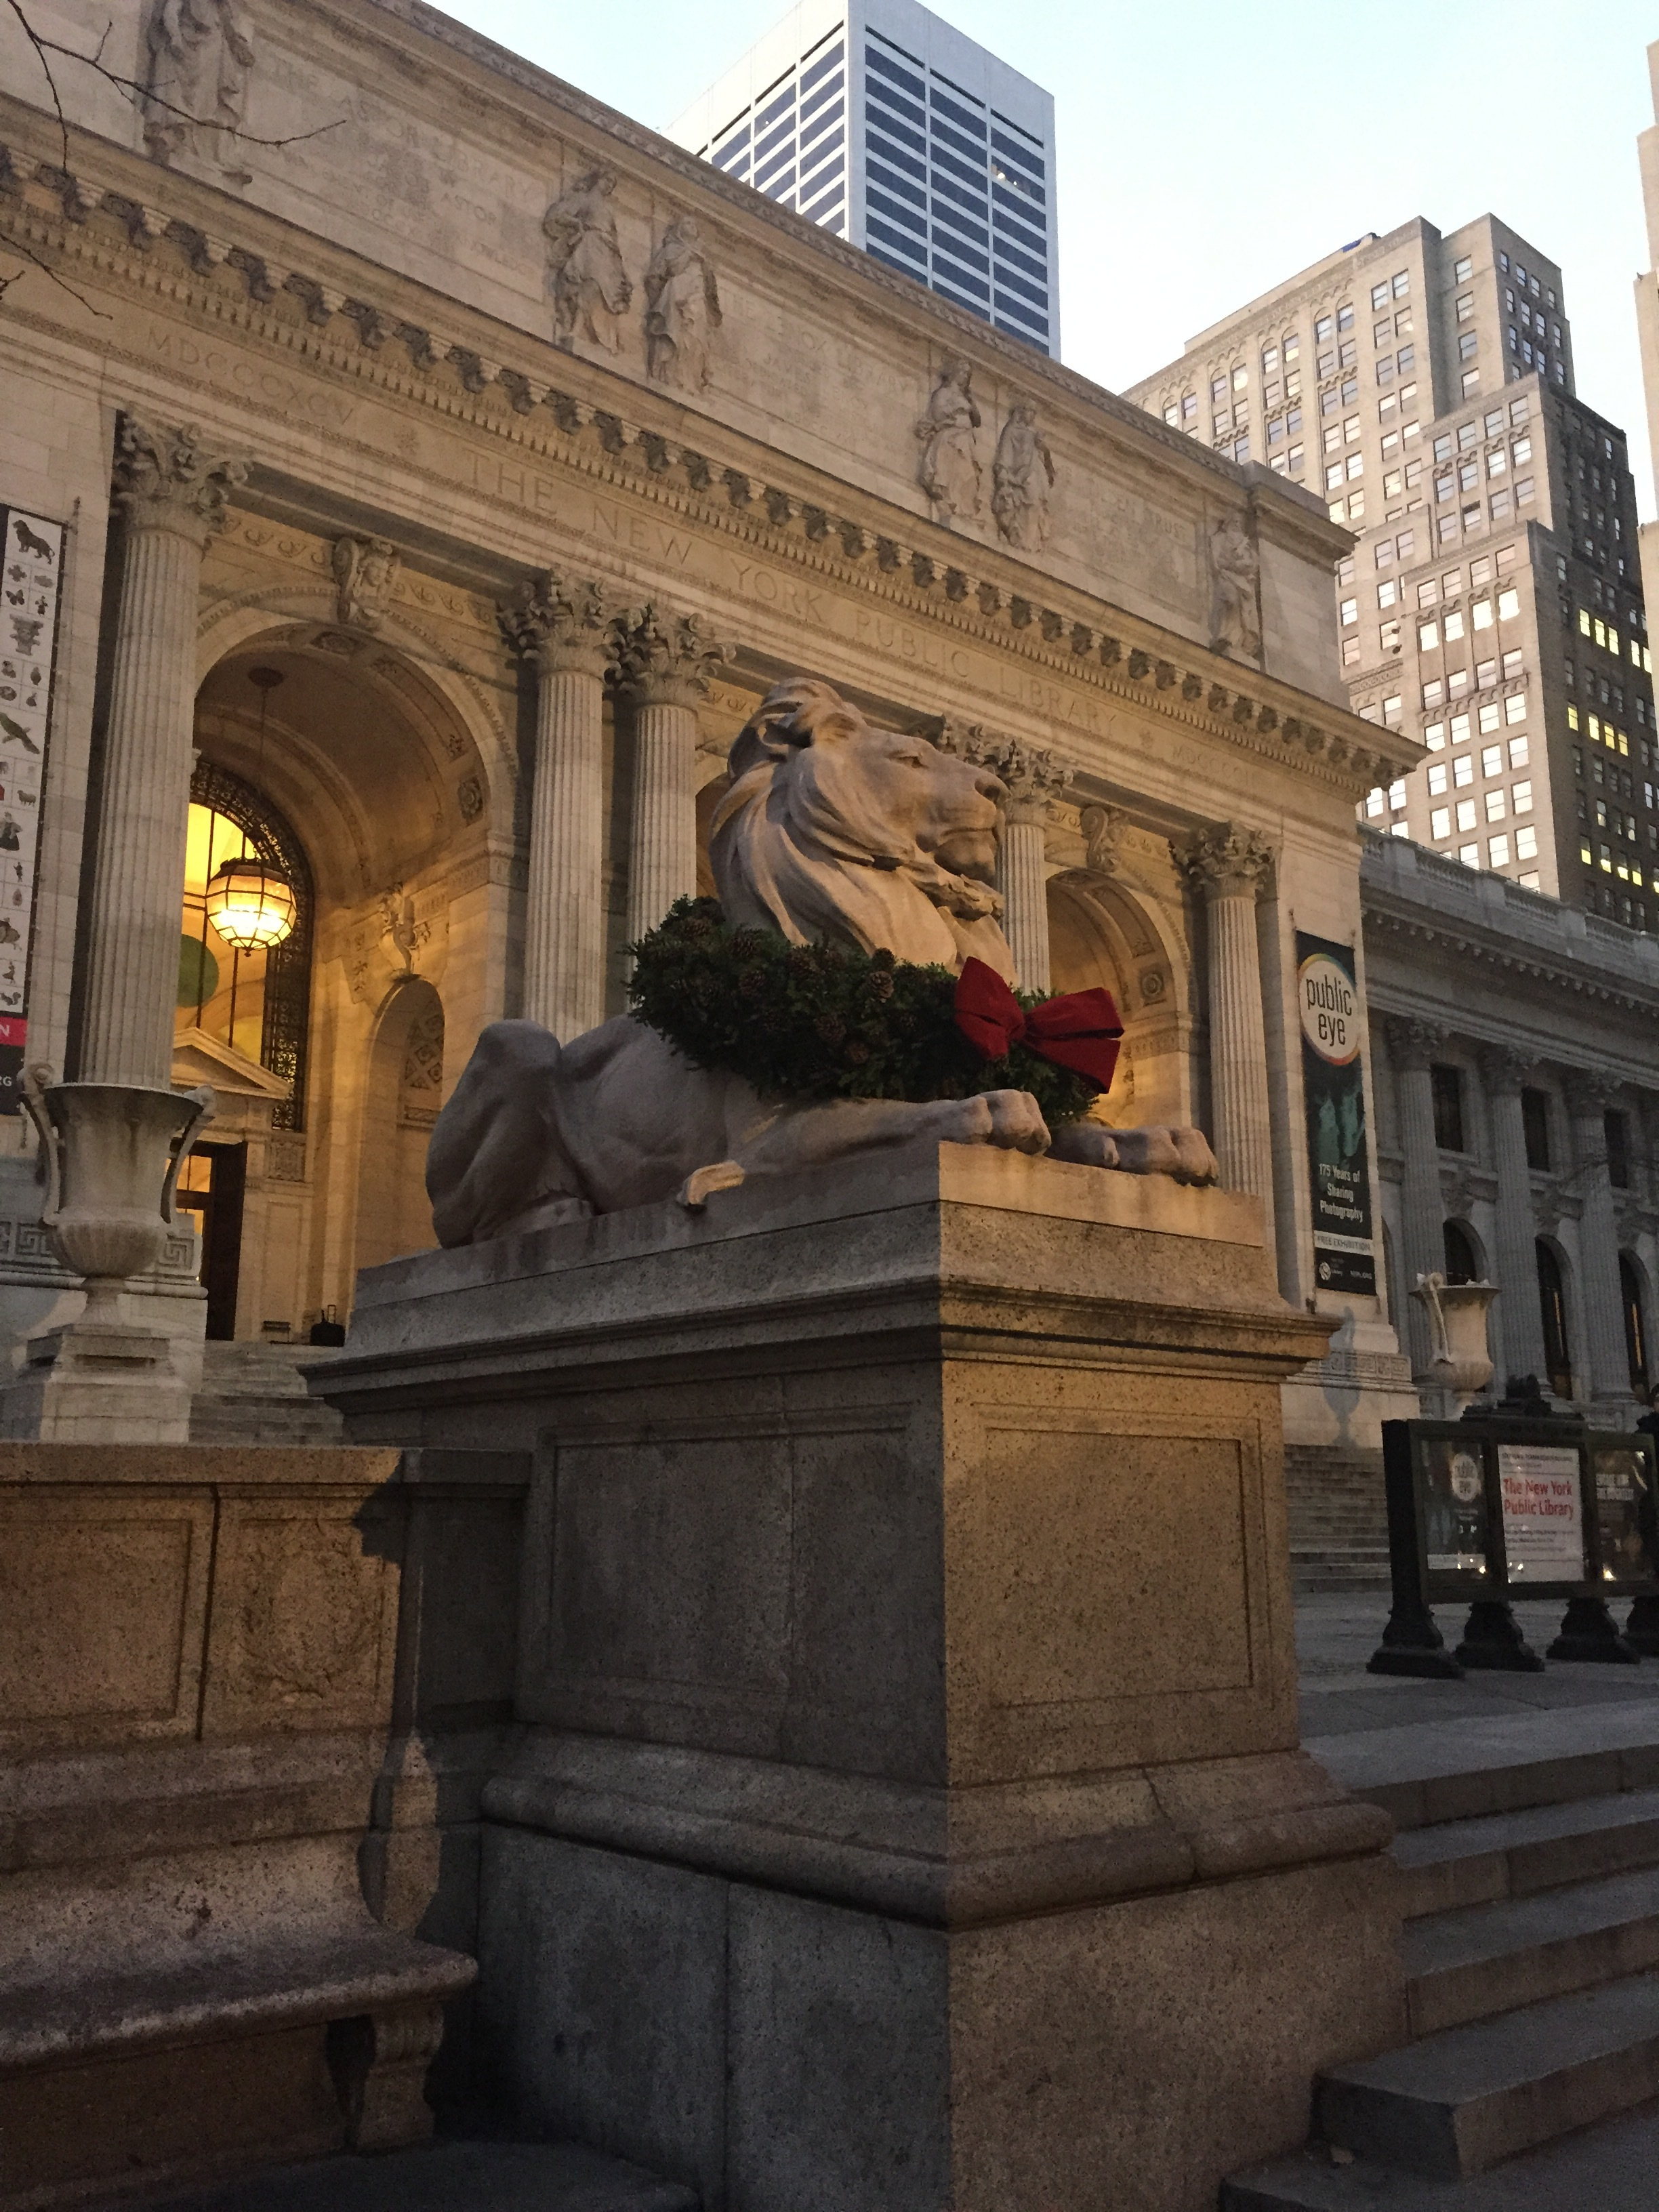 Patience the lion greets and guards the 5th Avenue entrance to the New York Public Library